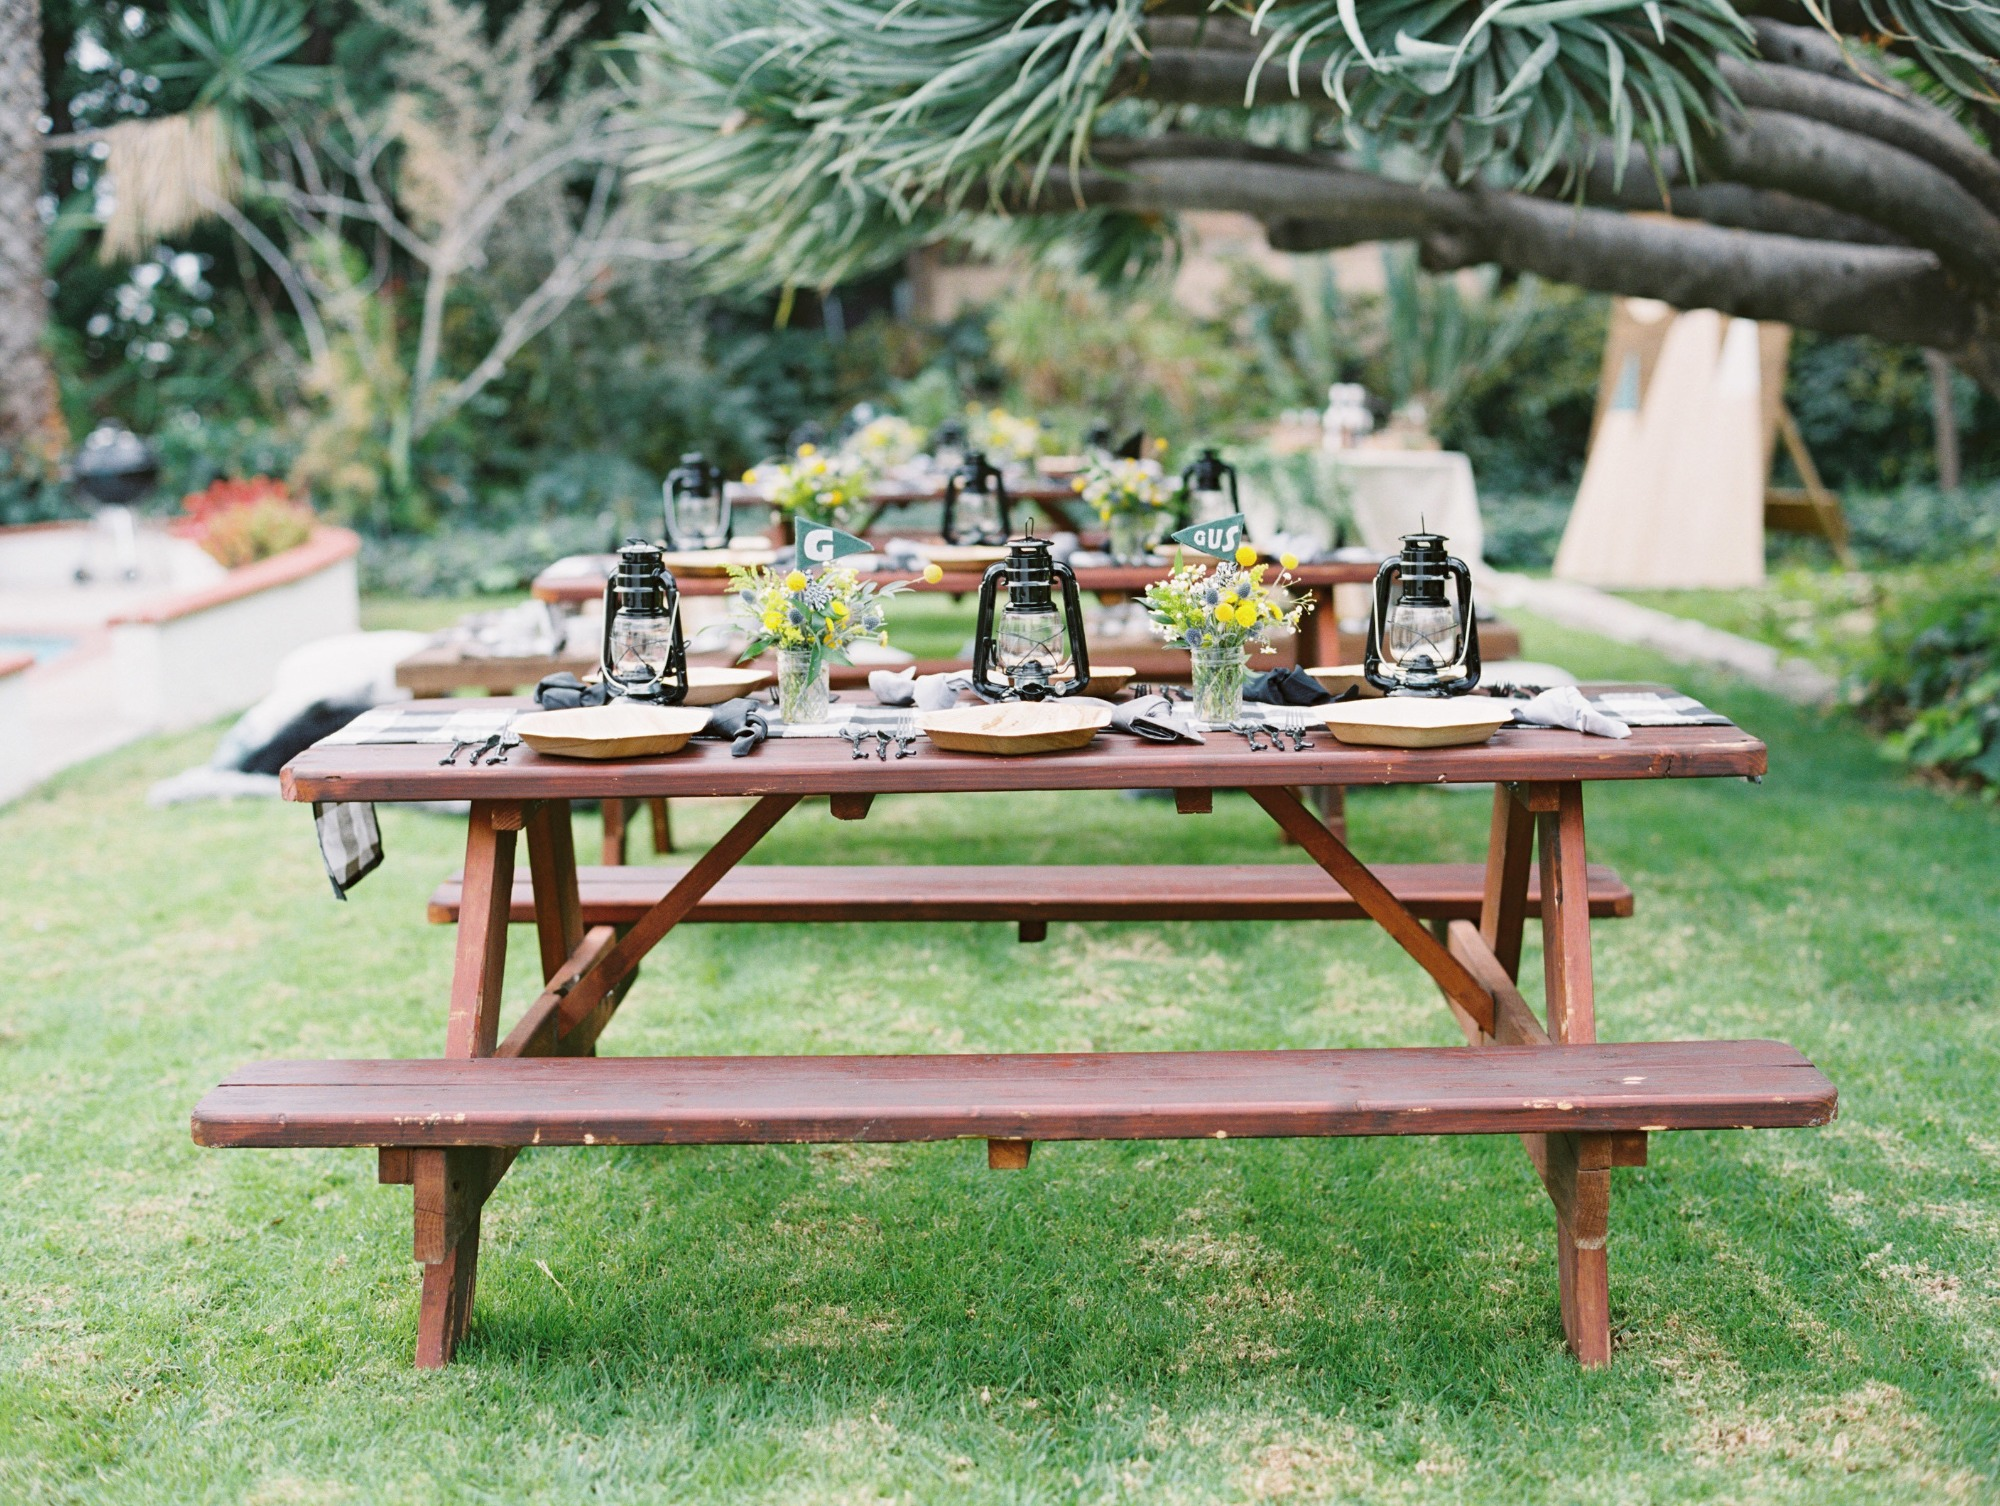 Picnic Table from Classic Camping Party Styled by Deets & Things | Black Twine